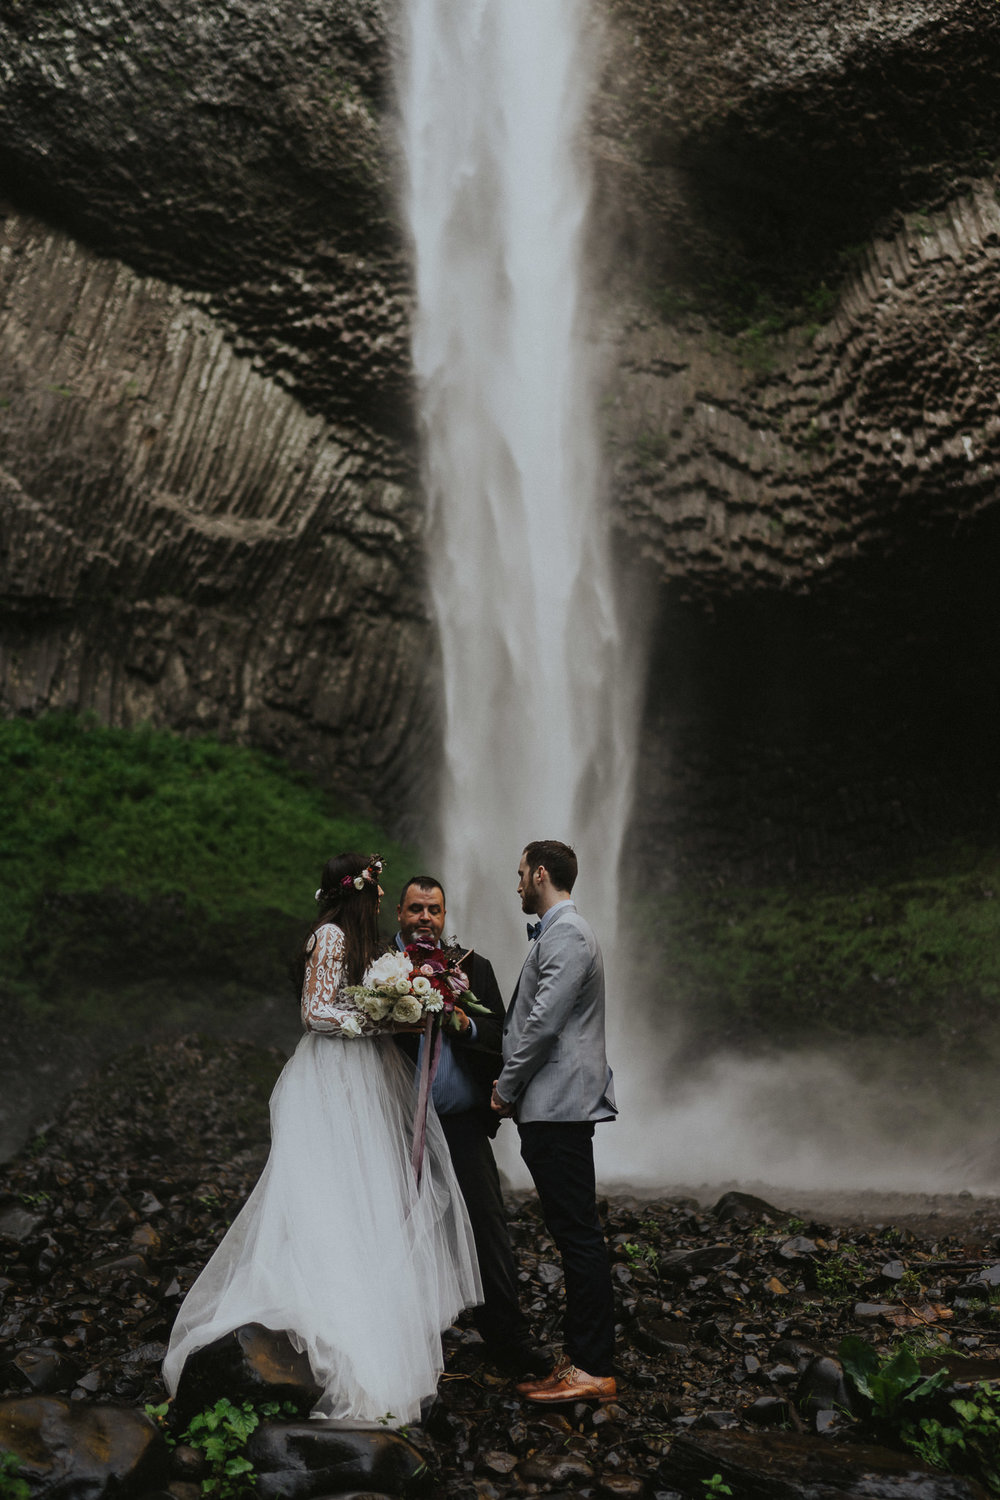 Chasing-Waterfalls-Elopement-wedding-Photographer